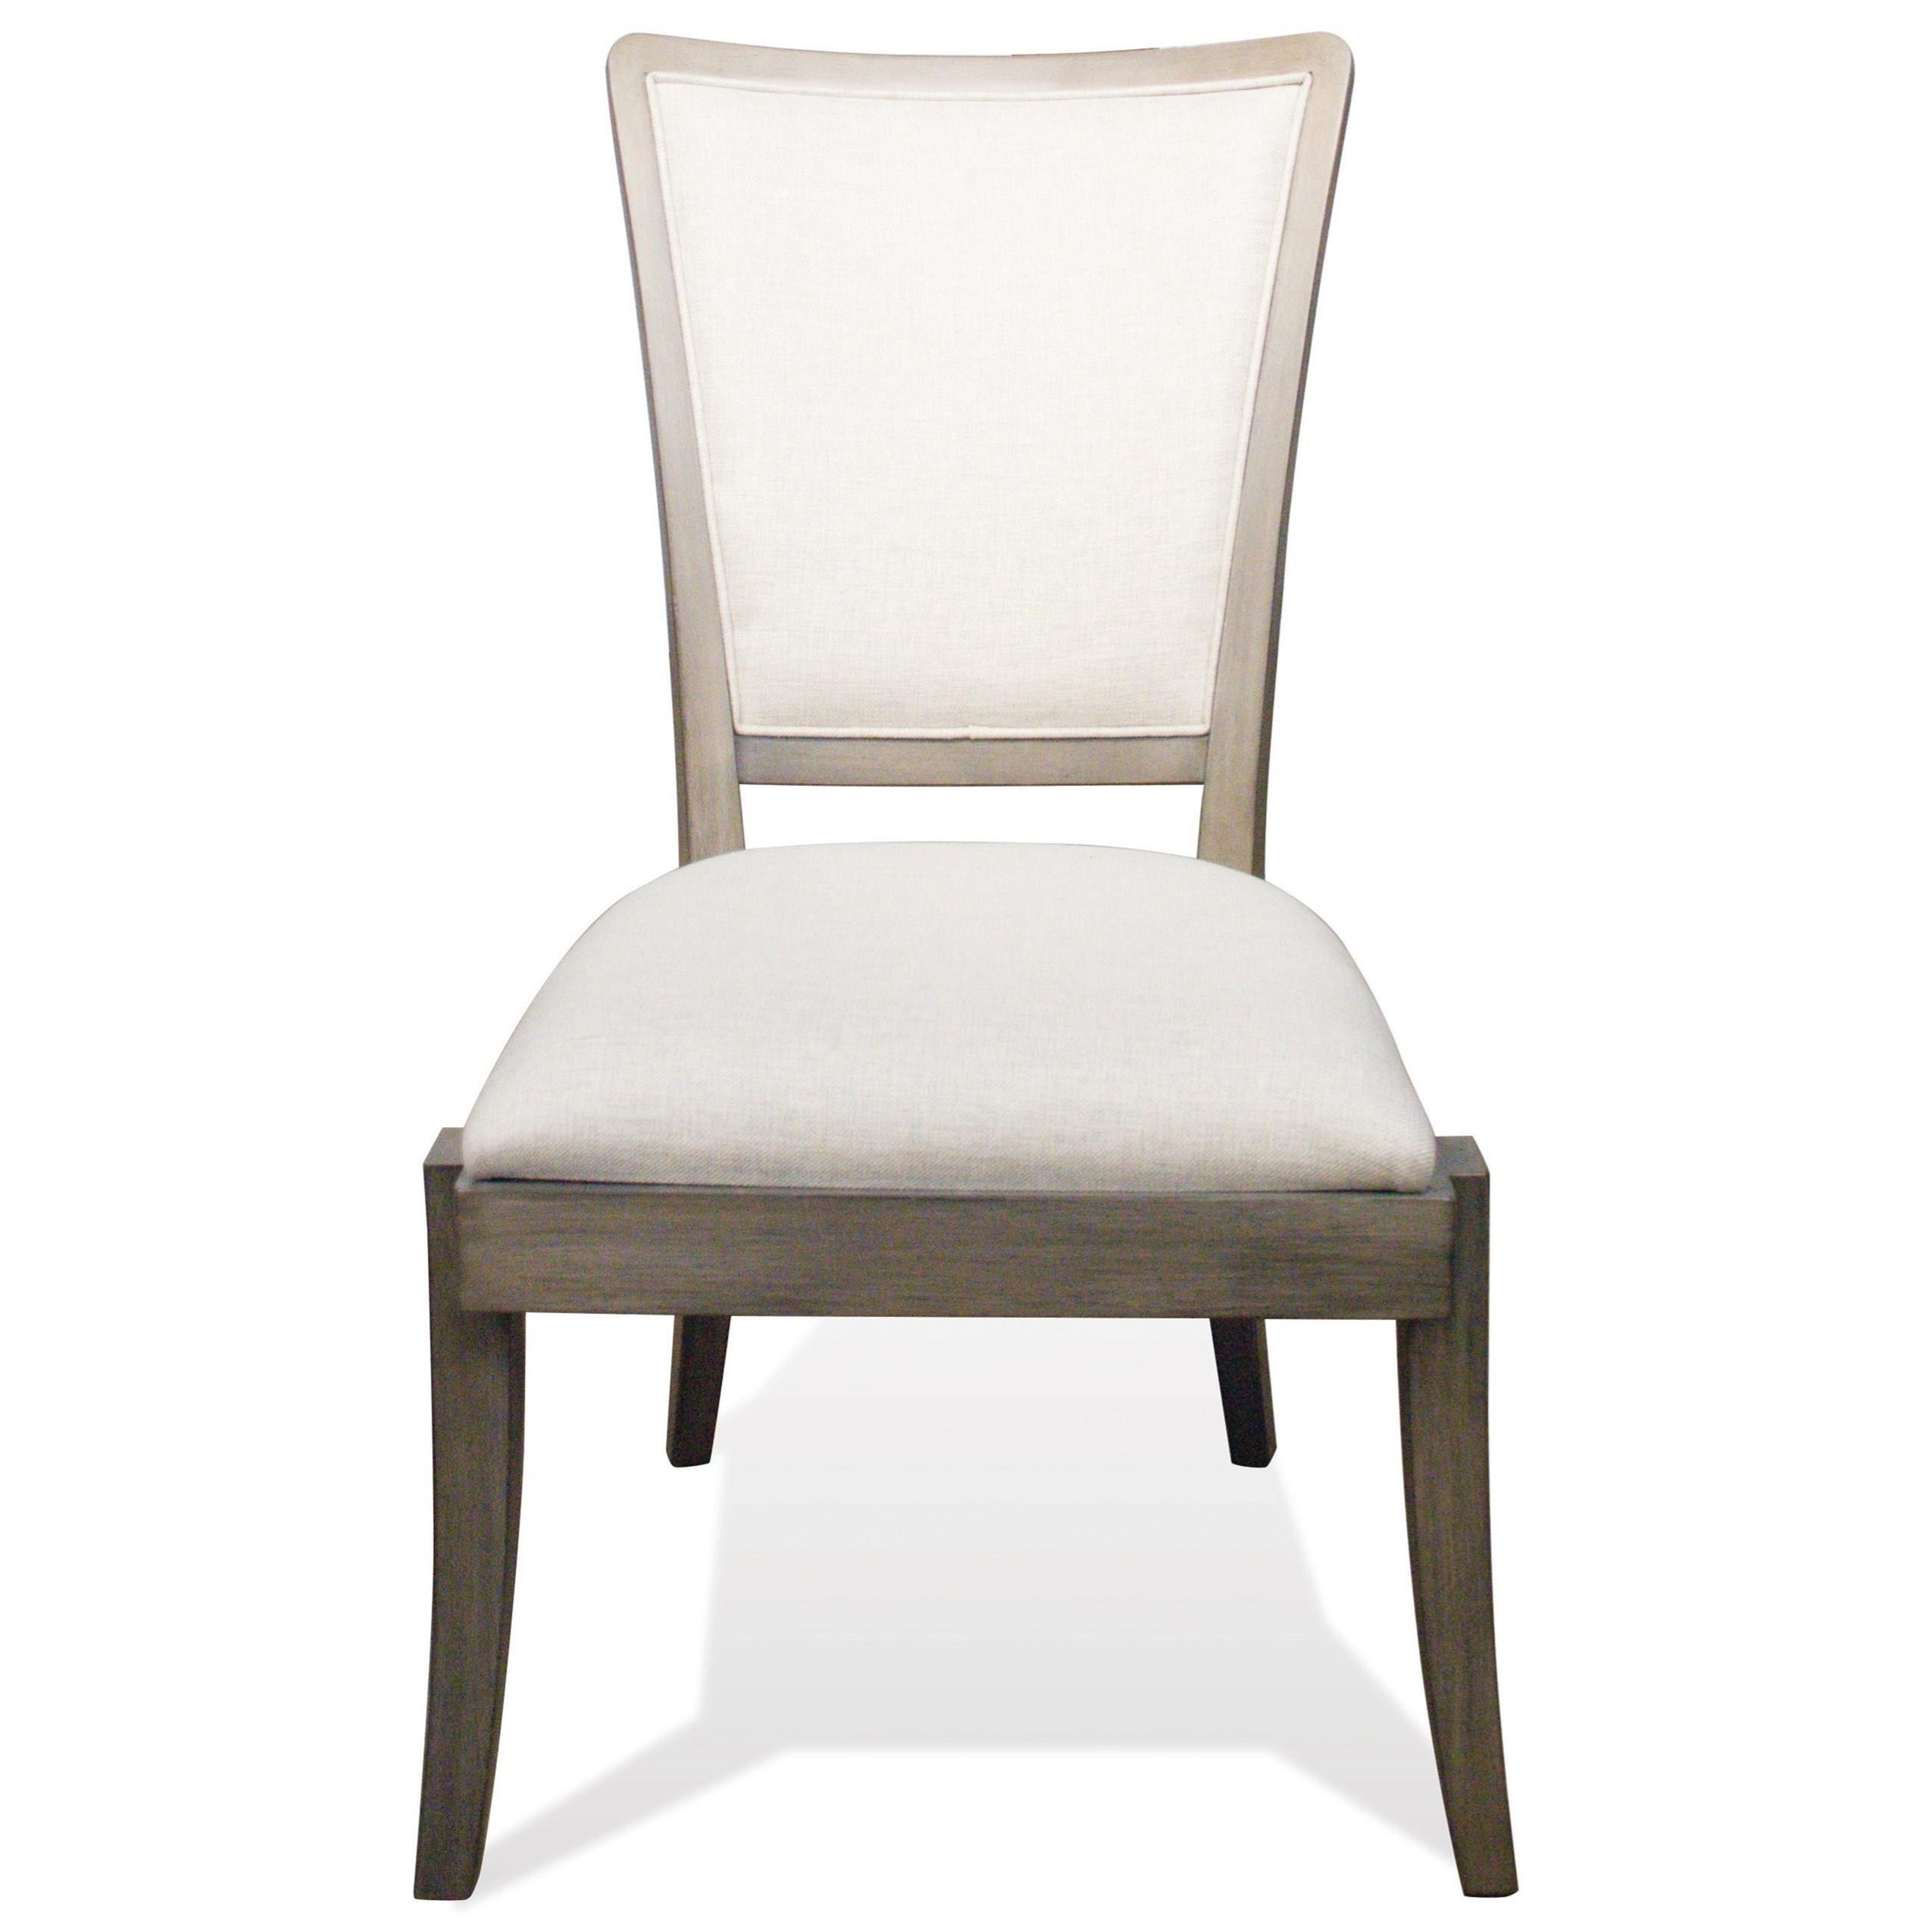 Riverside Furniture Vogue Solid Wood Upholstered Side Chair Collection